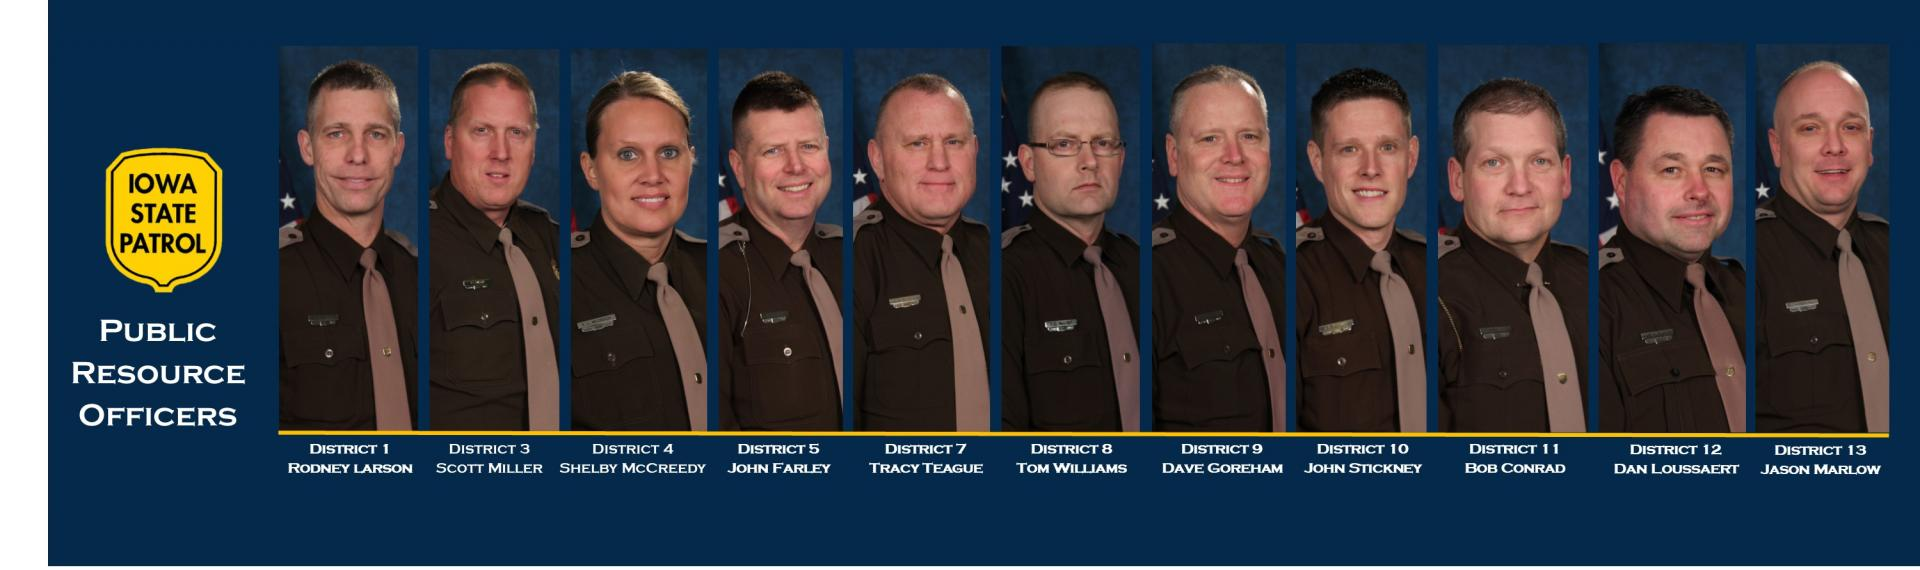 Photo of Iowa State Patrol Public Resource Officers